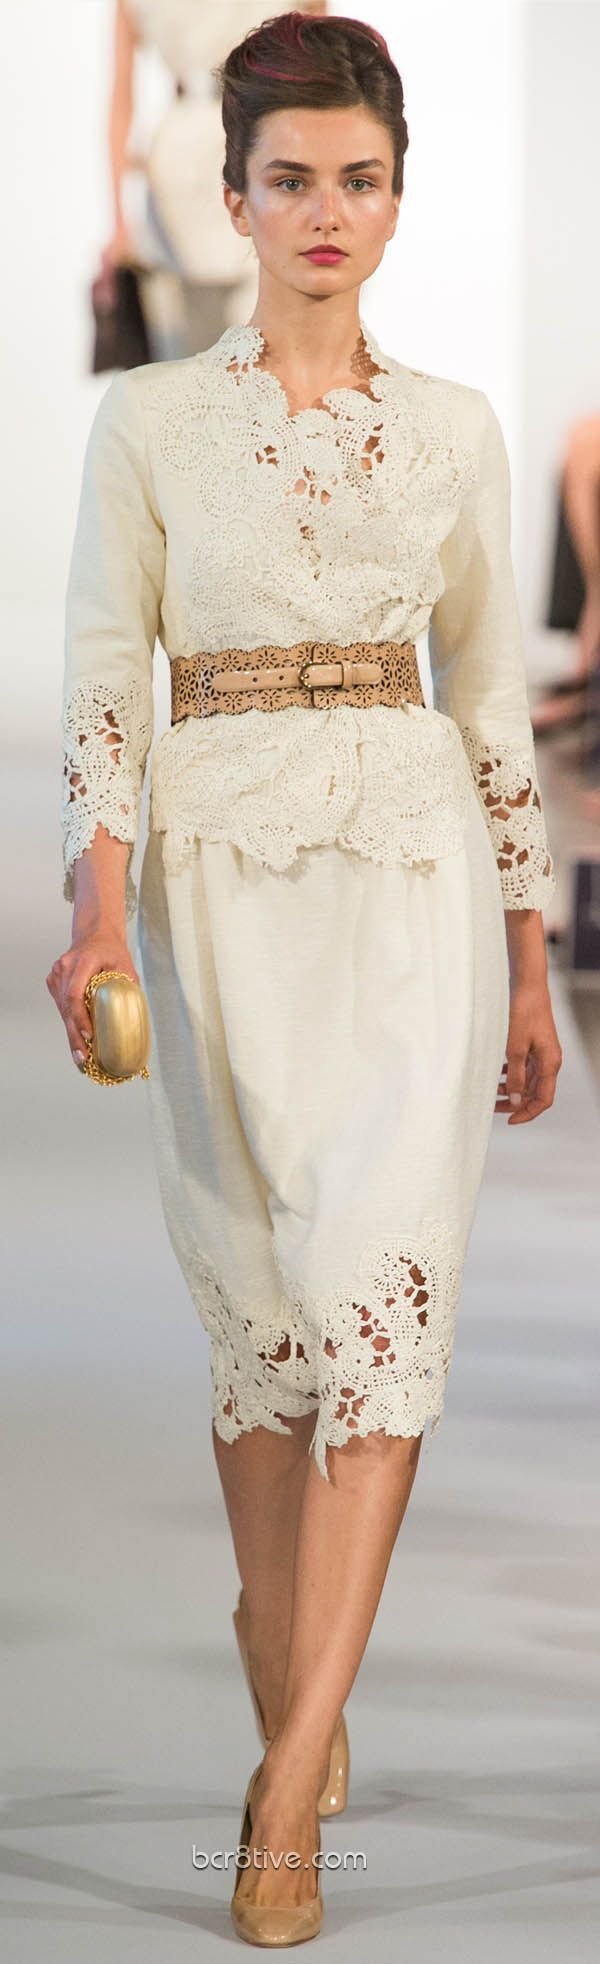 Oscar De La Renta Spring Summer Ready to Wear 2013    More lattice, lace , crochet with  neutrals ... Yay!  Loving this!